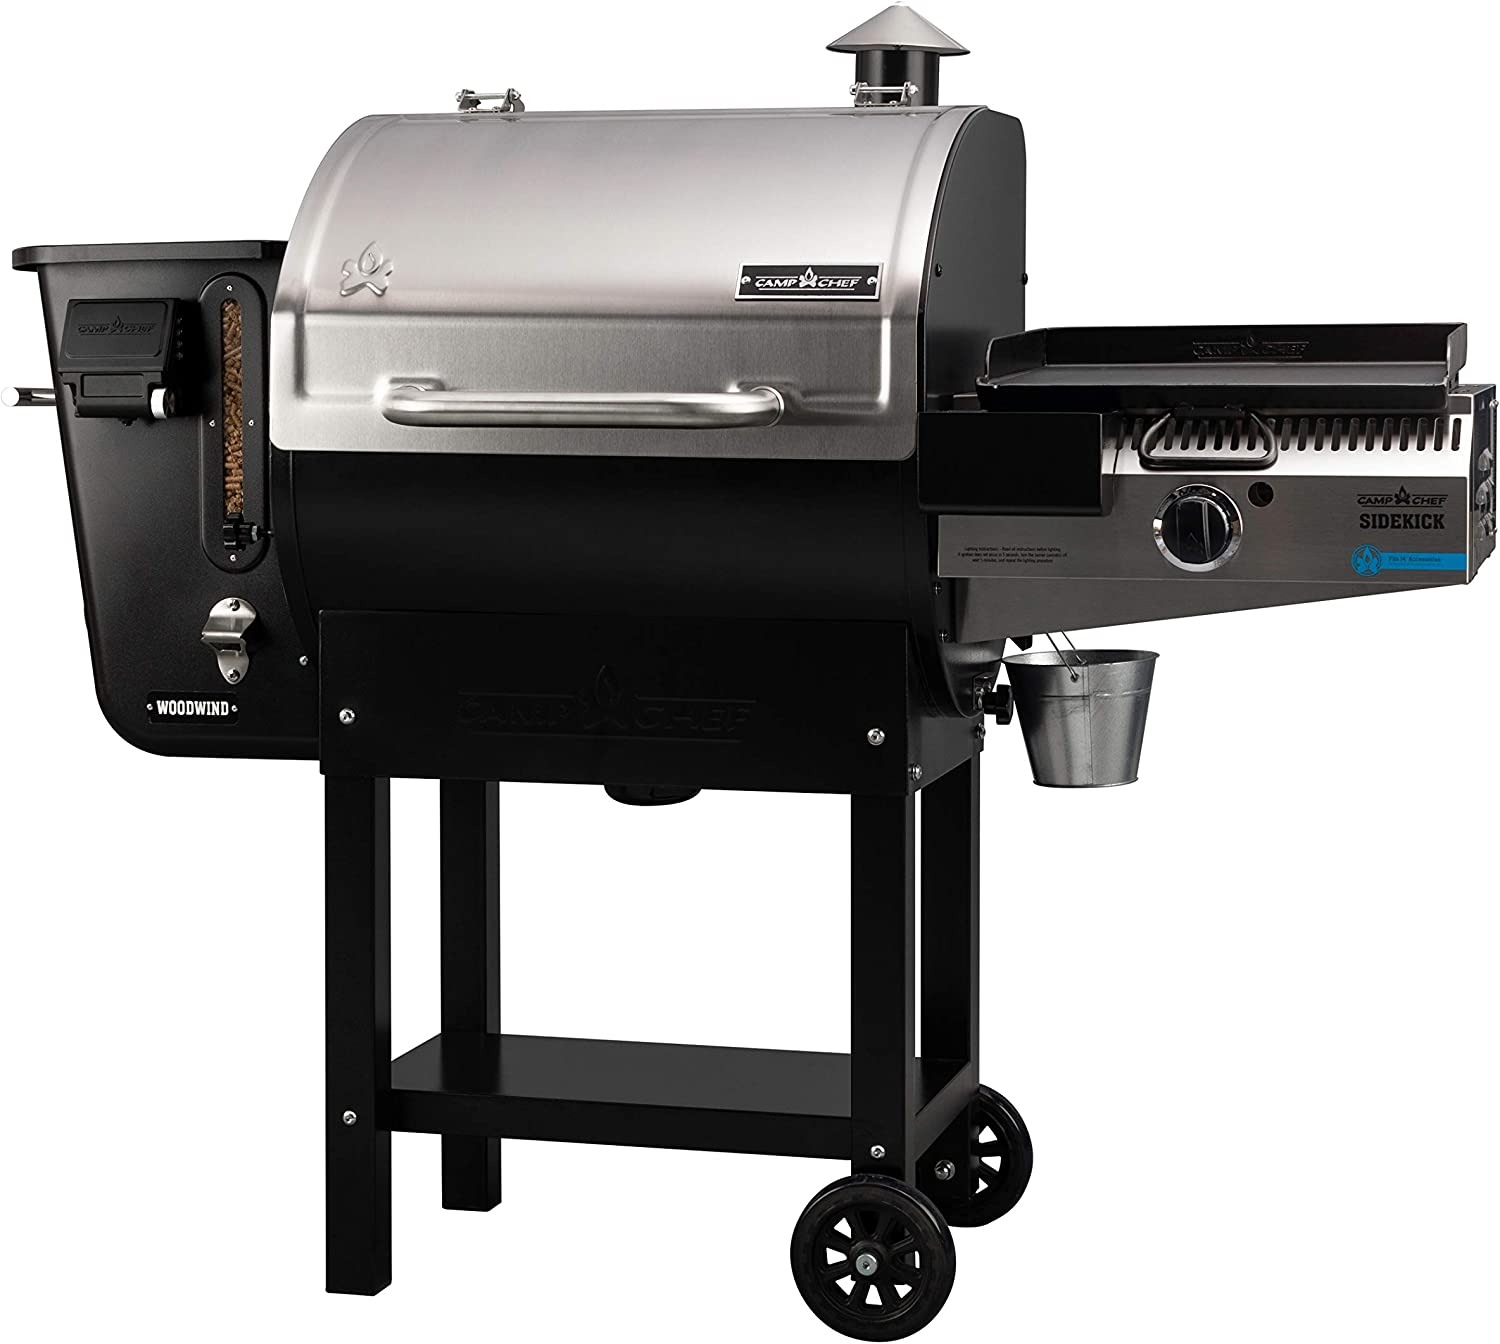 Camp-Chef's-Woodwind-24-PG14-Pellet-Grill-Smoker-with-Sidekick